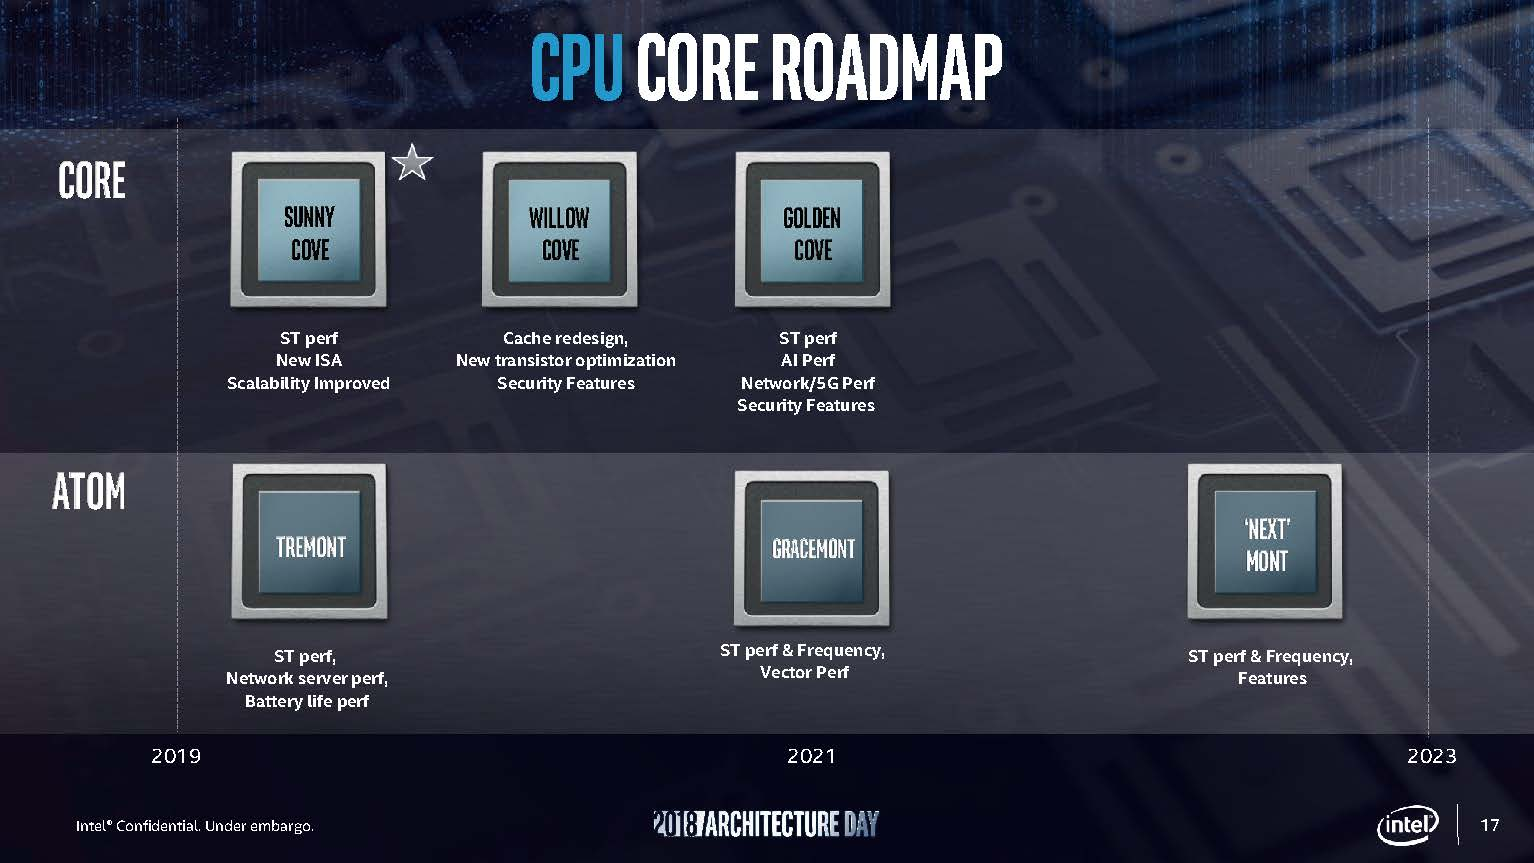 Intel Architecture Day 2018 CPU Core Roadmap